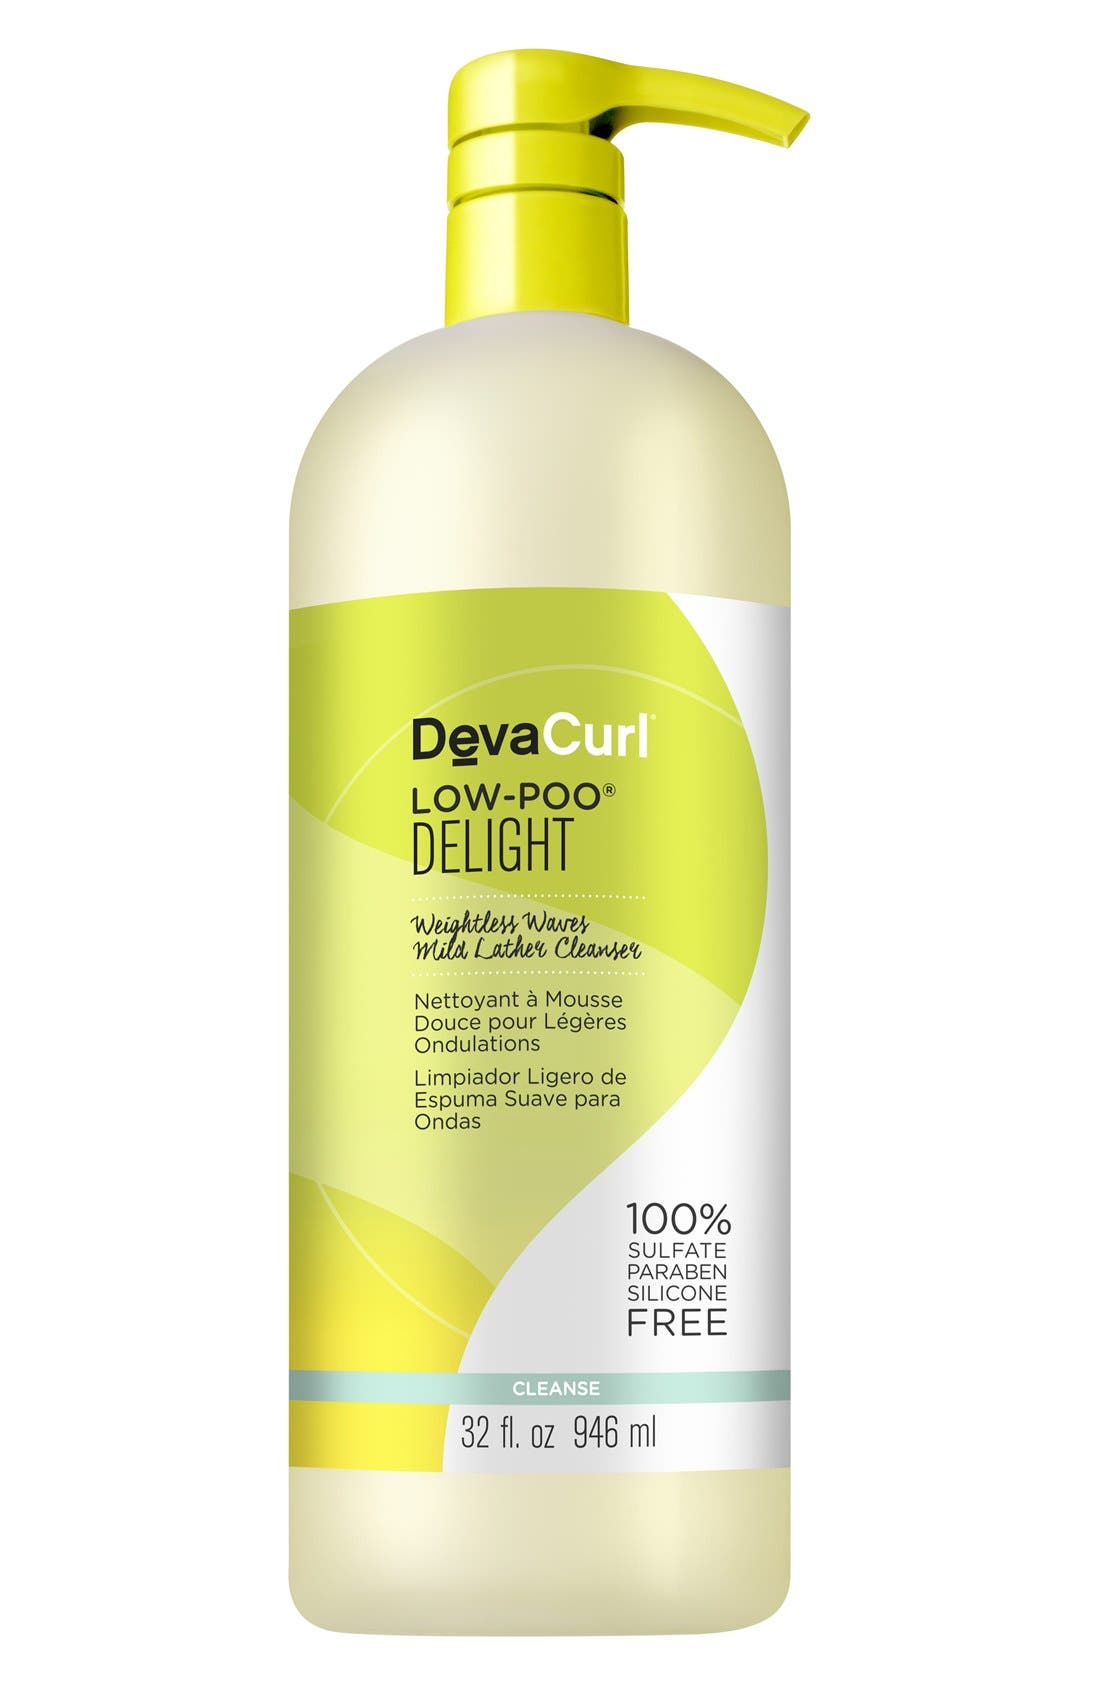 DevaCurl Low-Poo® Delight Weightless Waves Mild Lather Cleanser